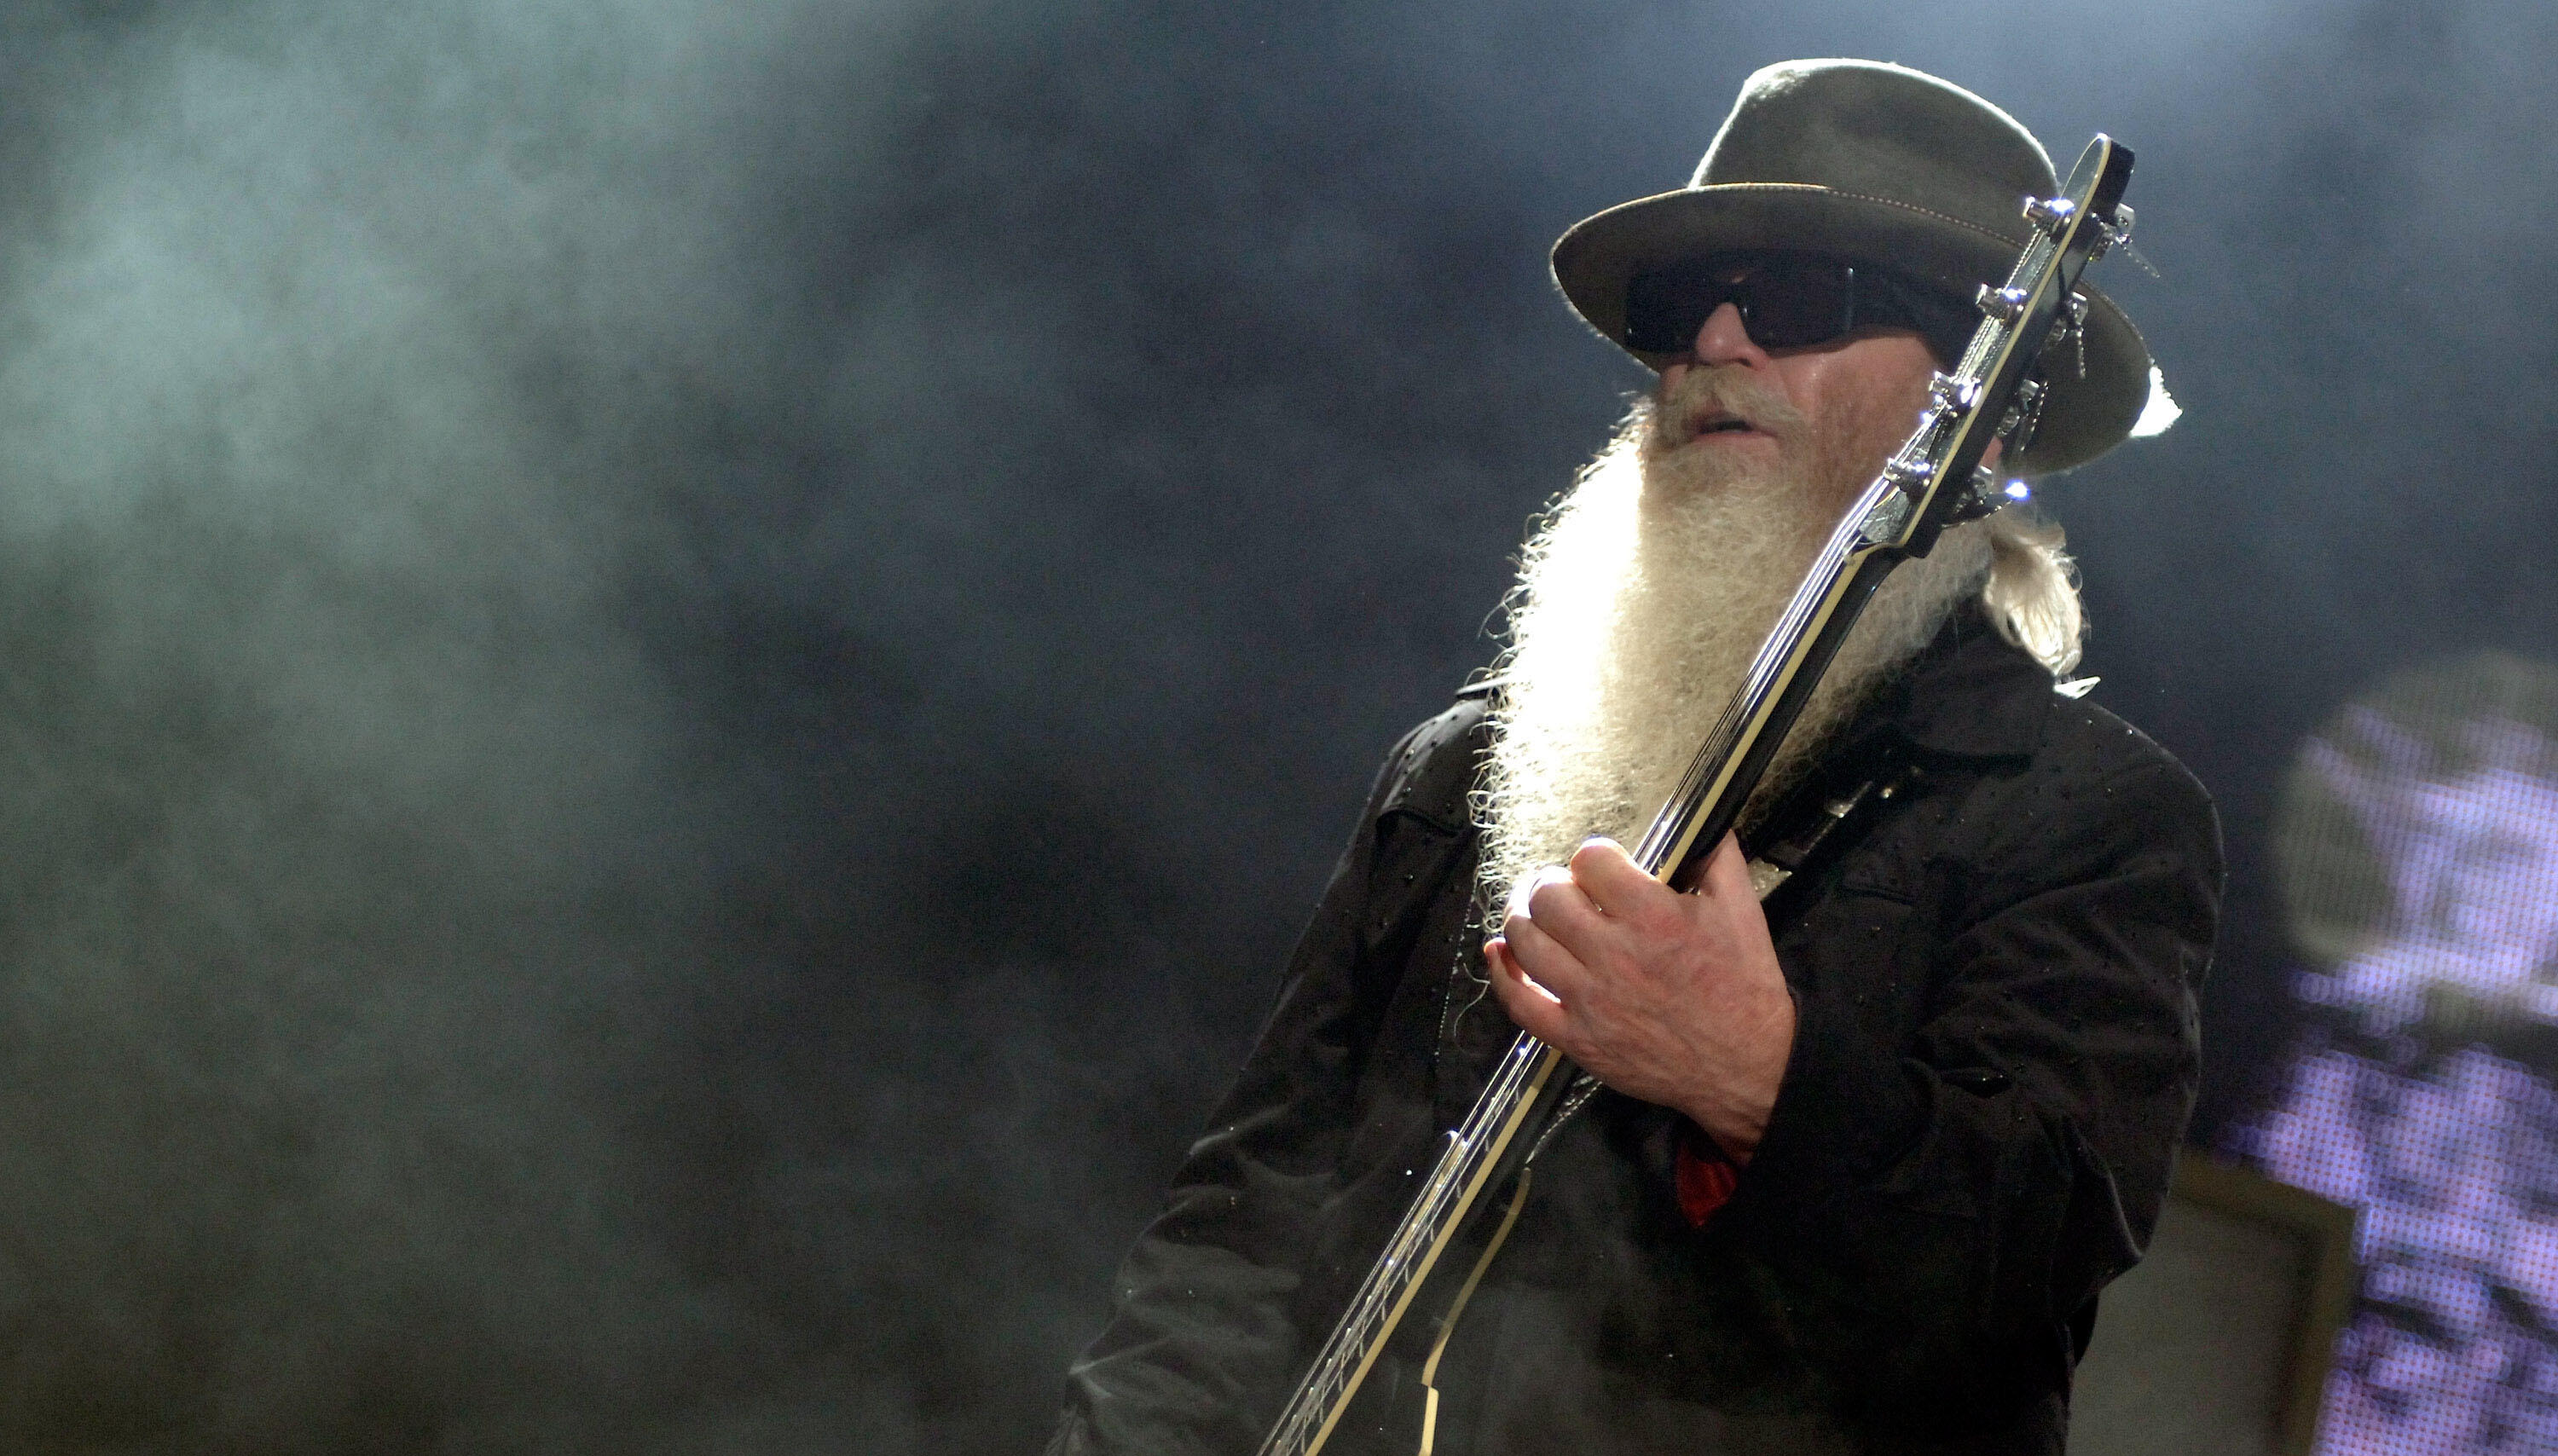 'Far Beyond Words': The World Reacts To Death Of ZZ Top Bassist Dusty Hill